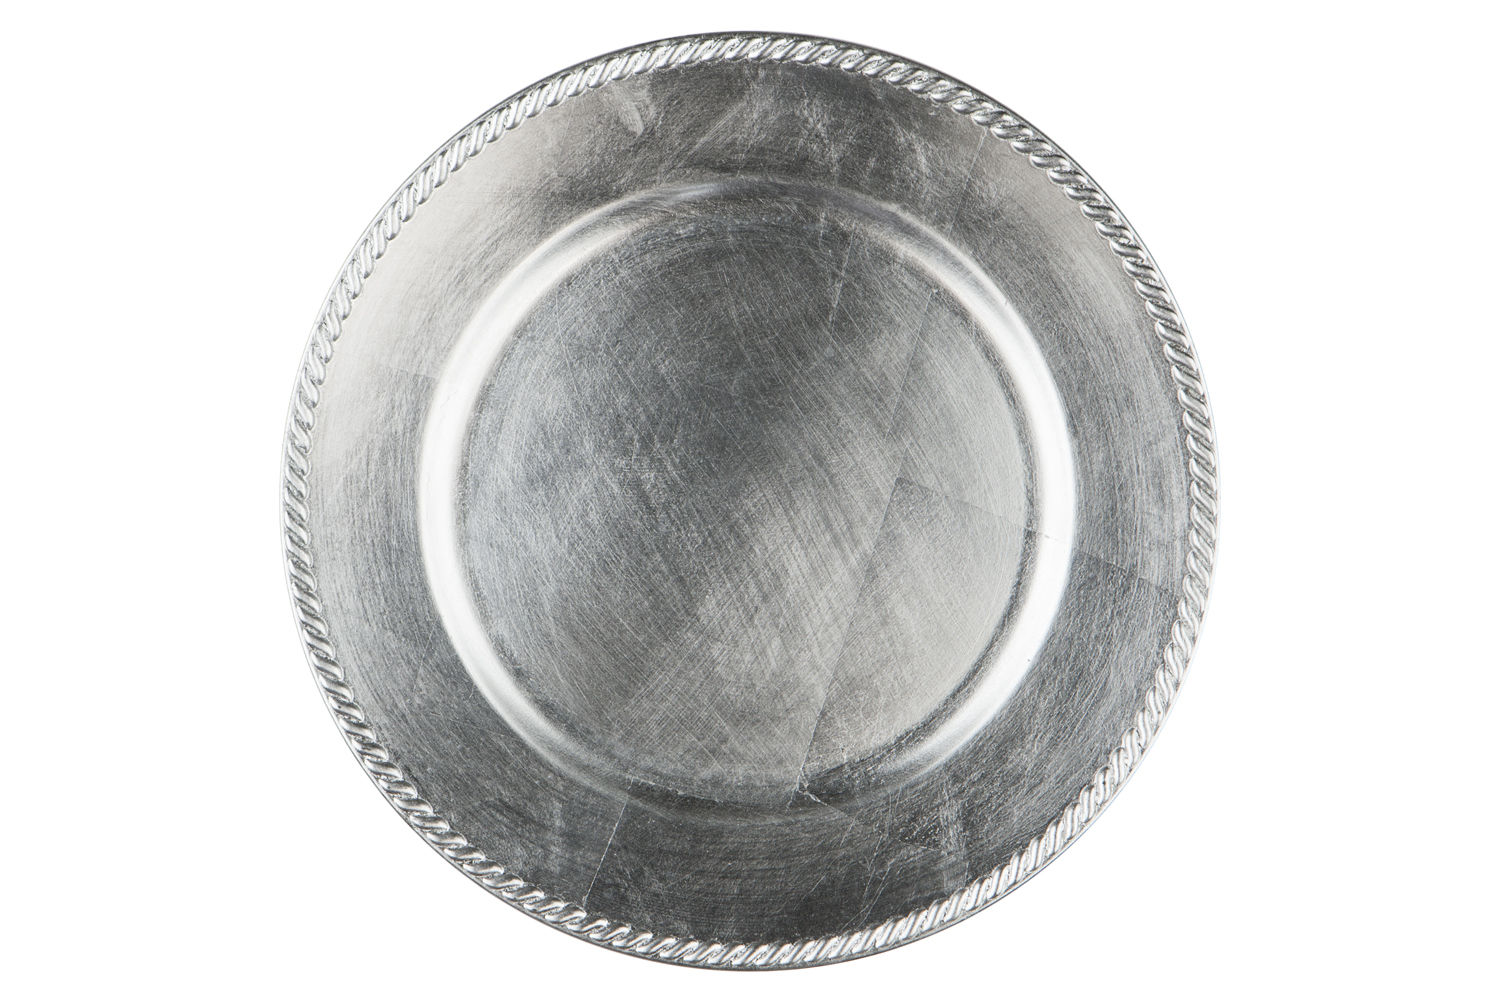 Silver Basic Acrylic Beaded Edge Charger Plate By Chair